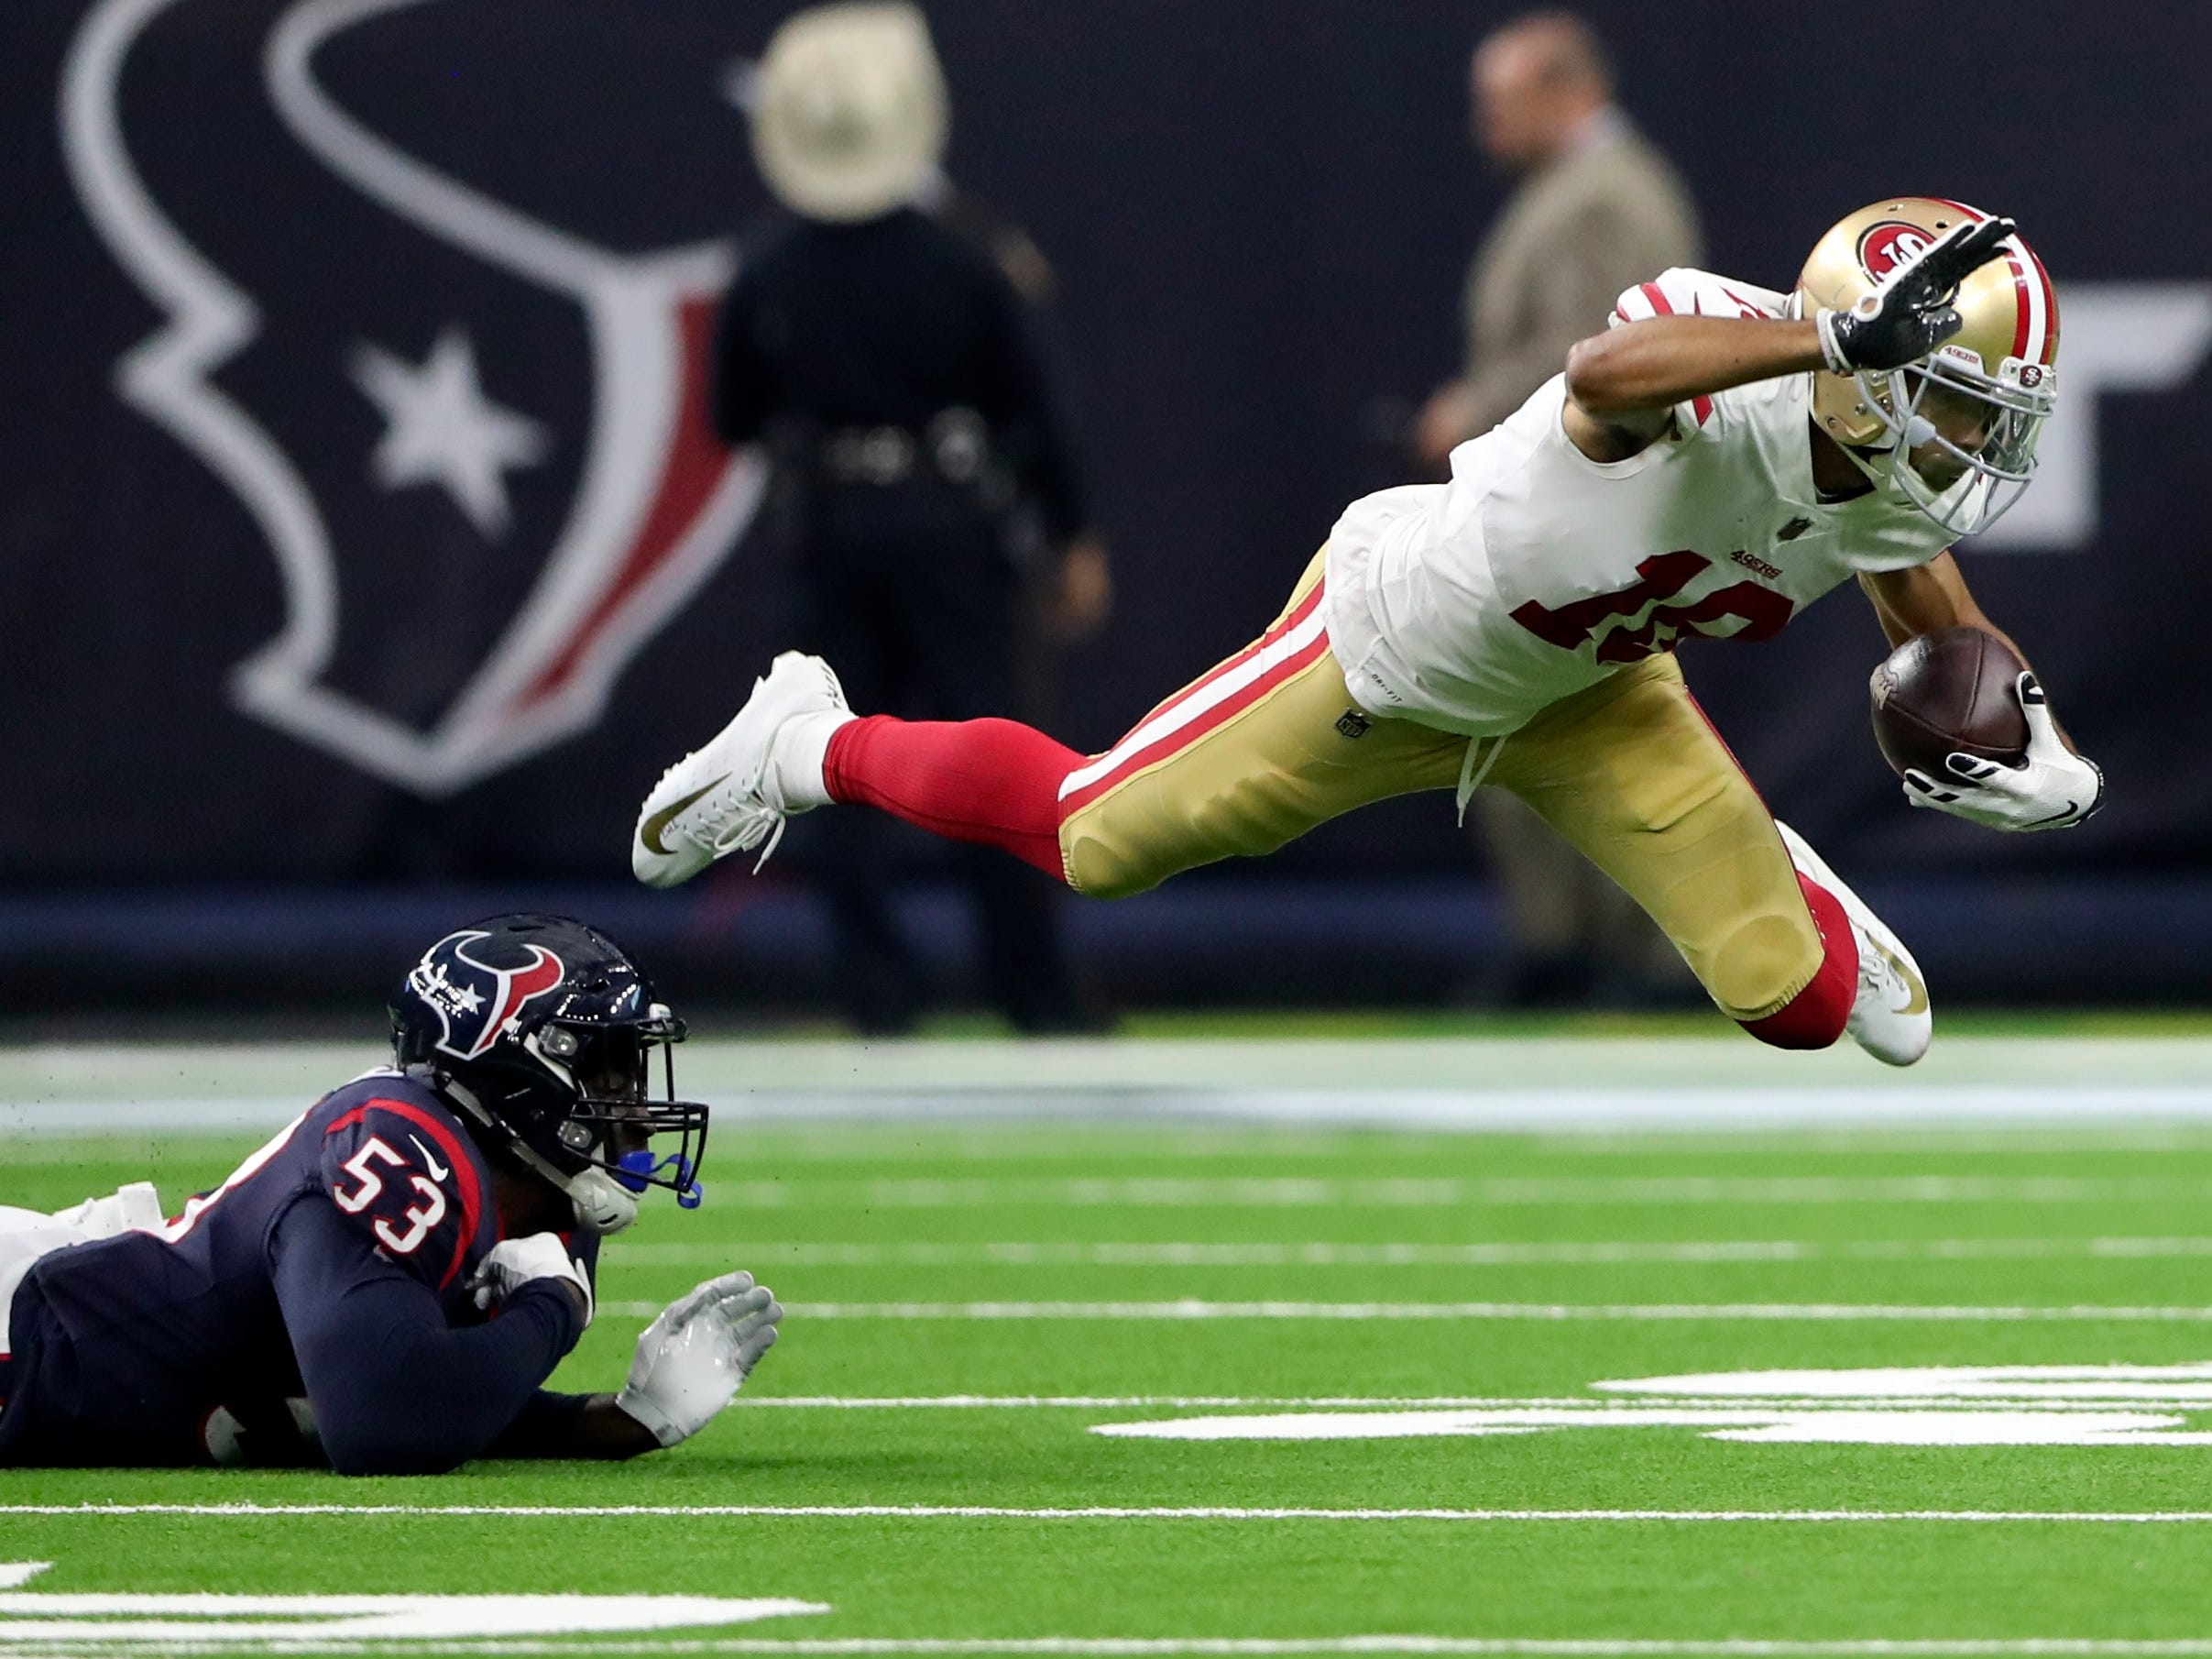 49ers wide receiver Dante Pettis (18) gets tripped up by Texans linebacker Duke Ejiofor (53) during the first quarter.